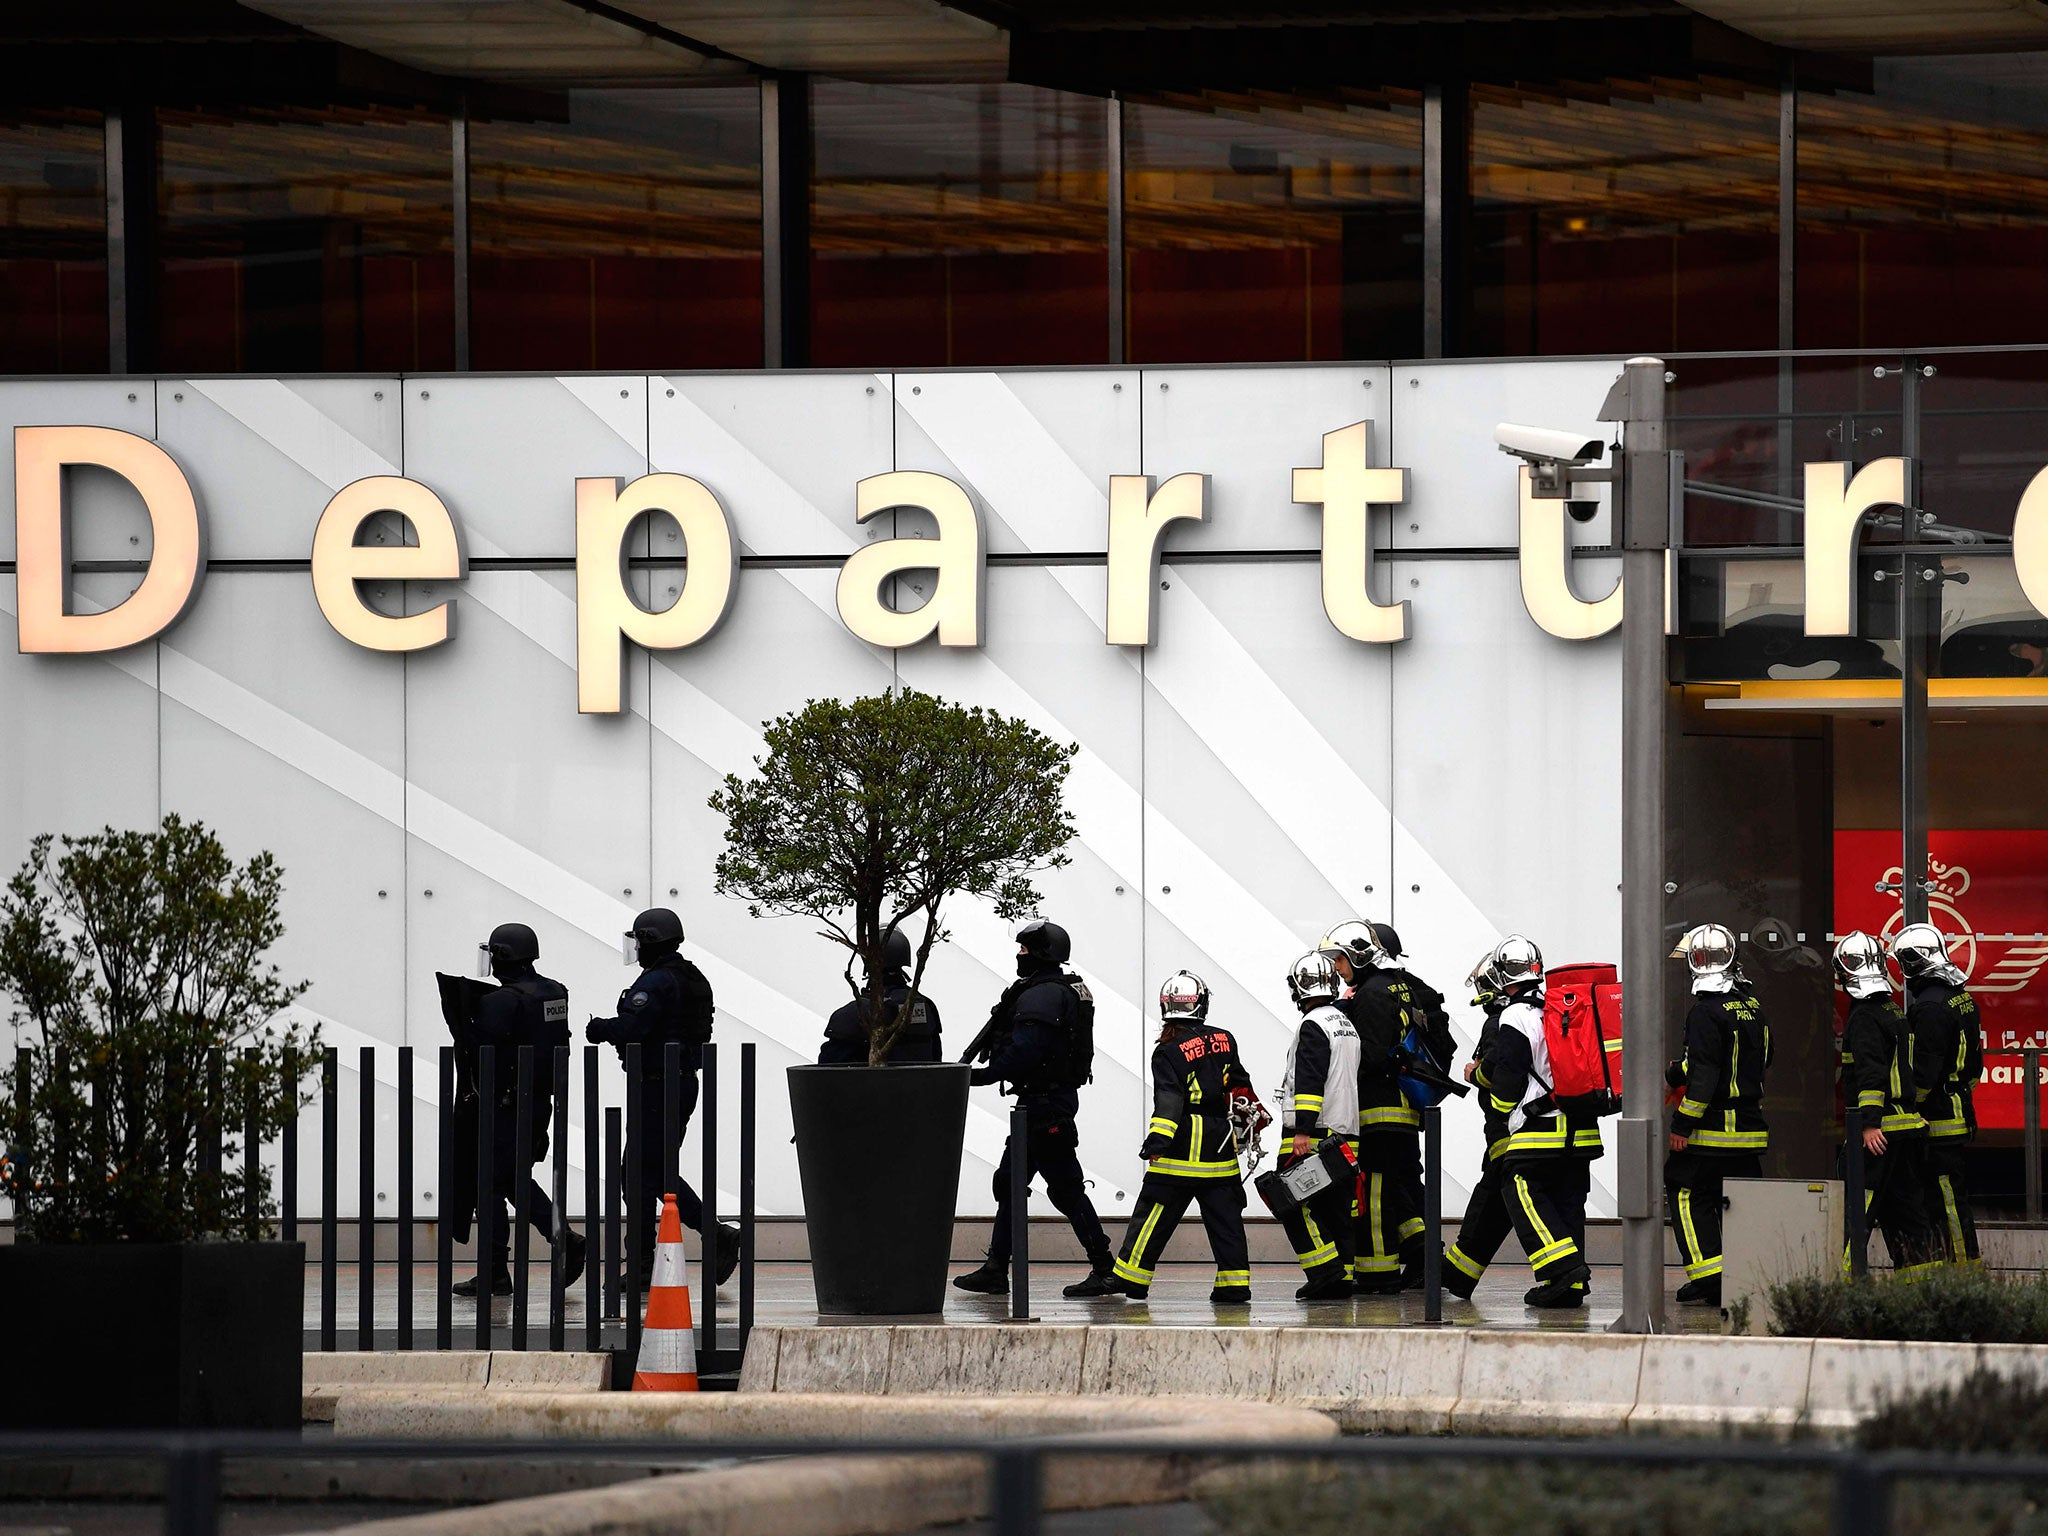 Aeroporto Orly : Paris orly airport shooting: attacker was radicalised muslim man